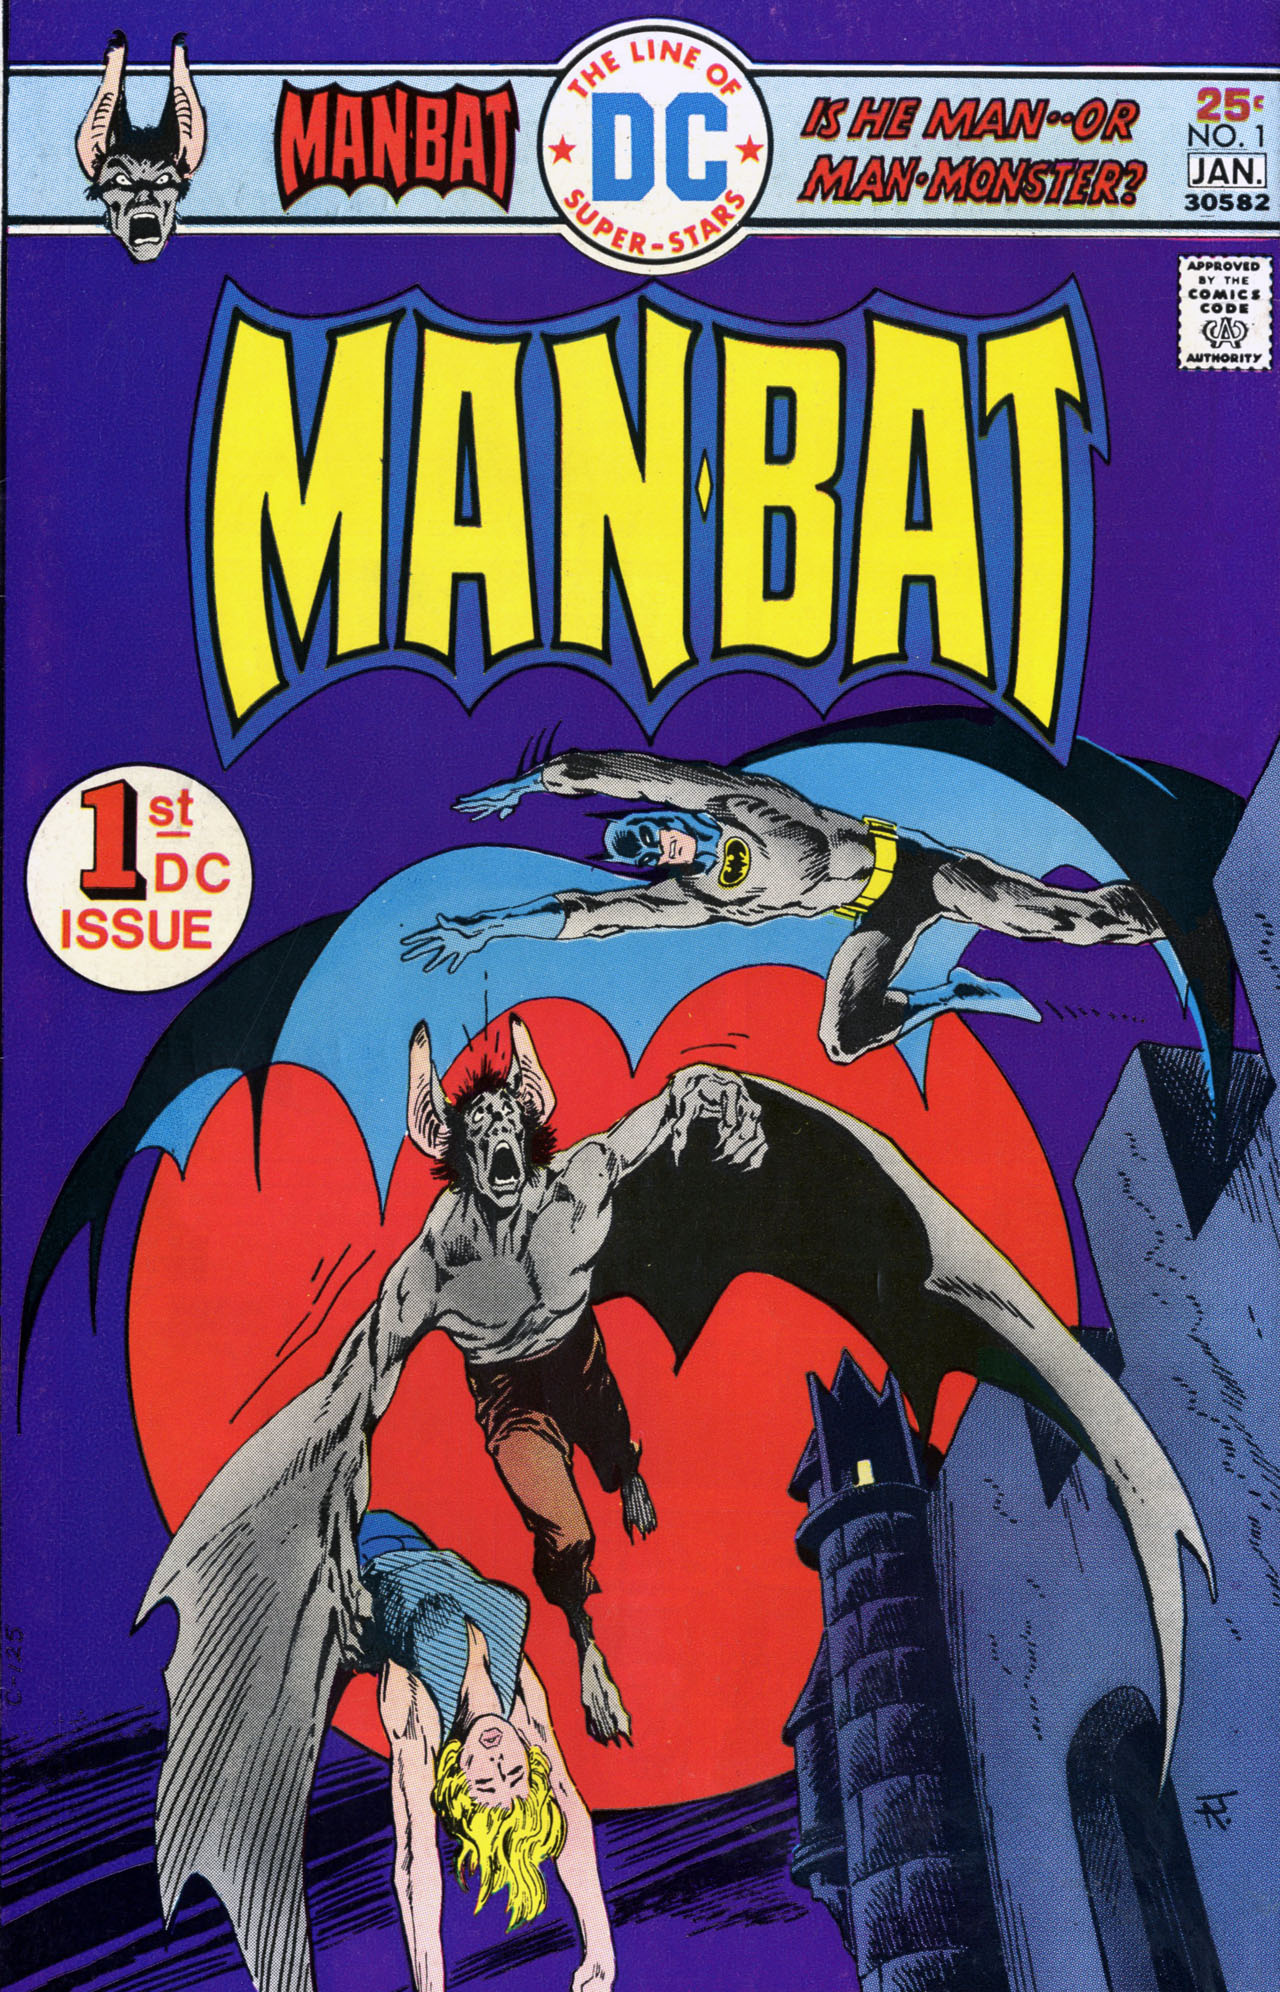 Cover for Man-Bat #1